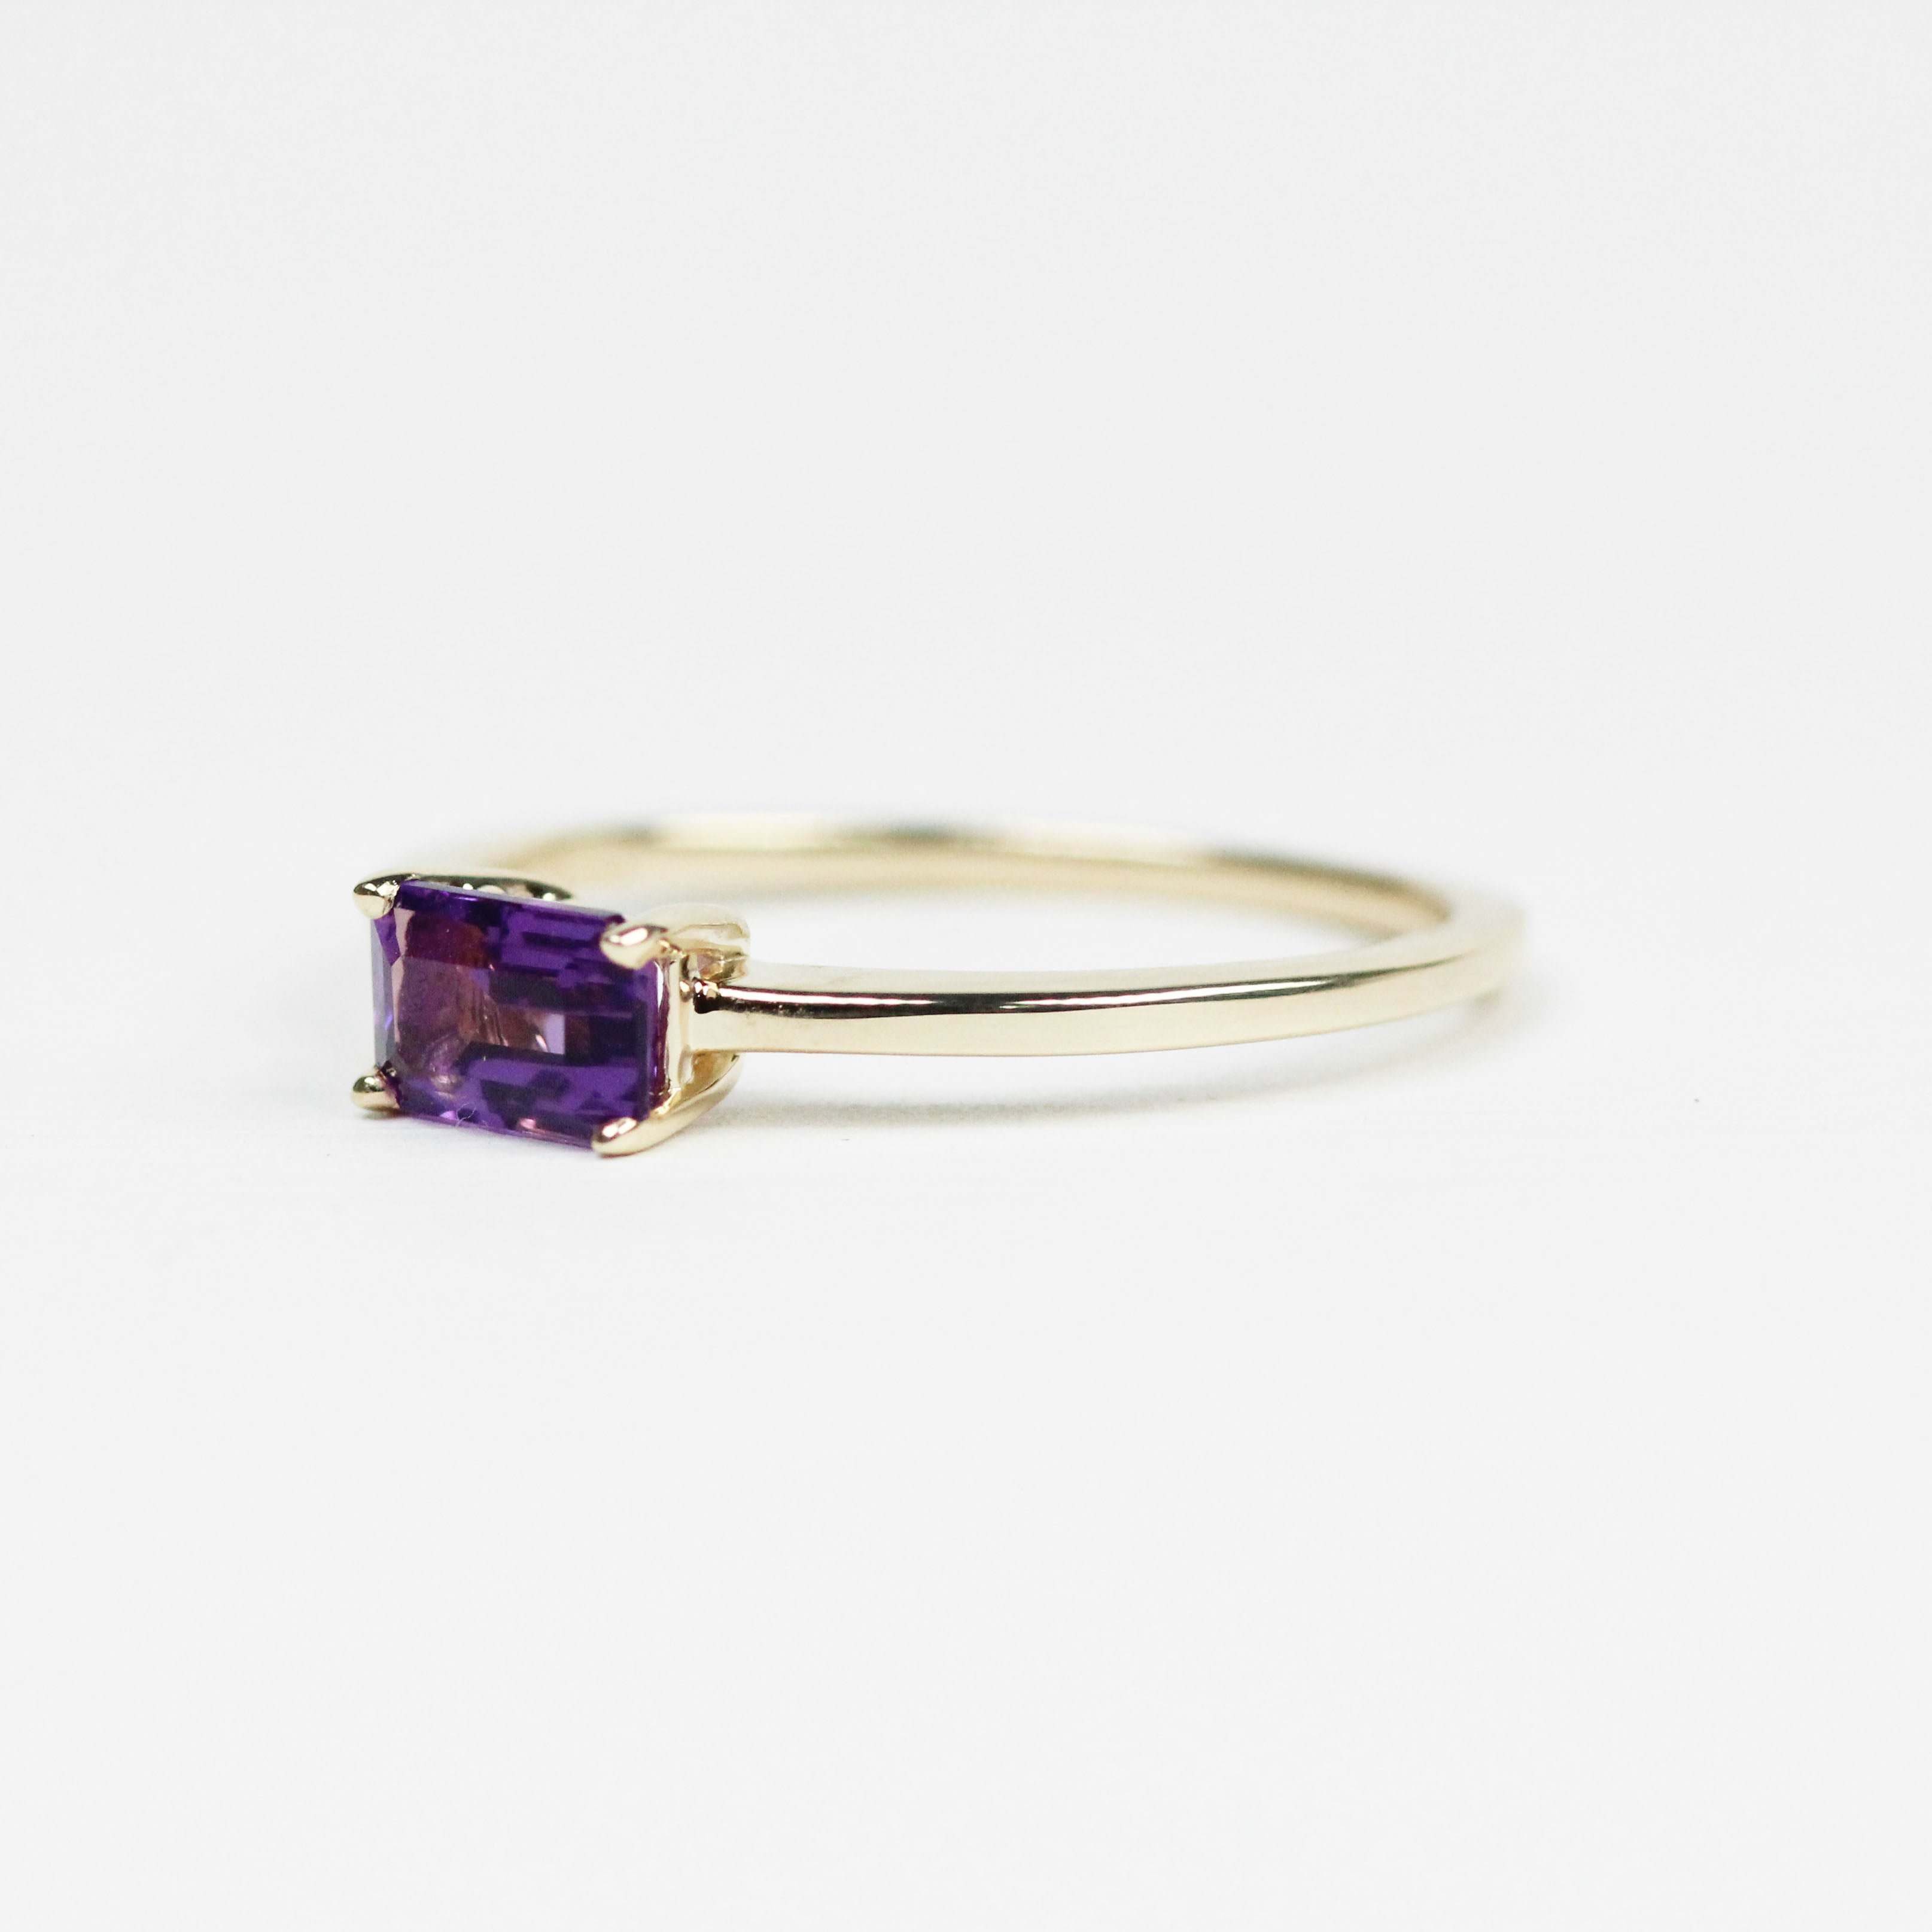 Ruthie Ring with Purple Amethyst - Your choice of metal - Custom - Salt & Pepper Celestial Diamond Engagement Rings and Wedding Bands  by Midwinter Co.